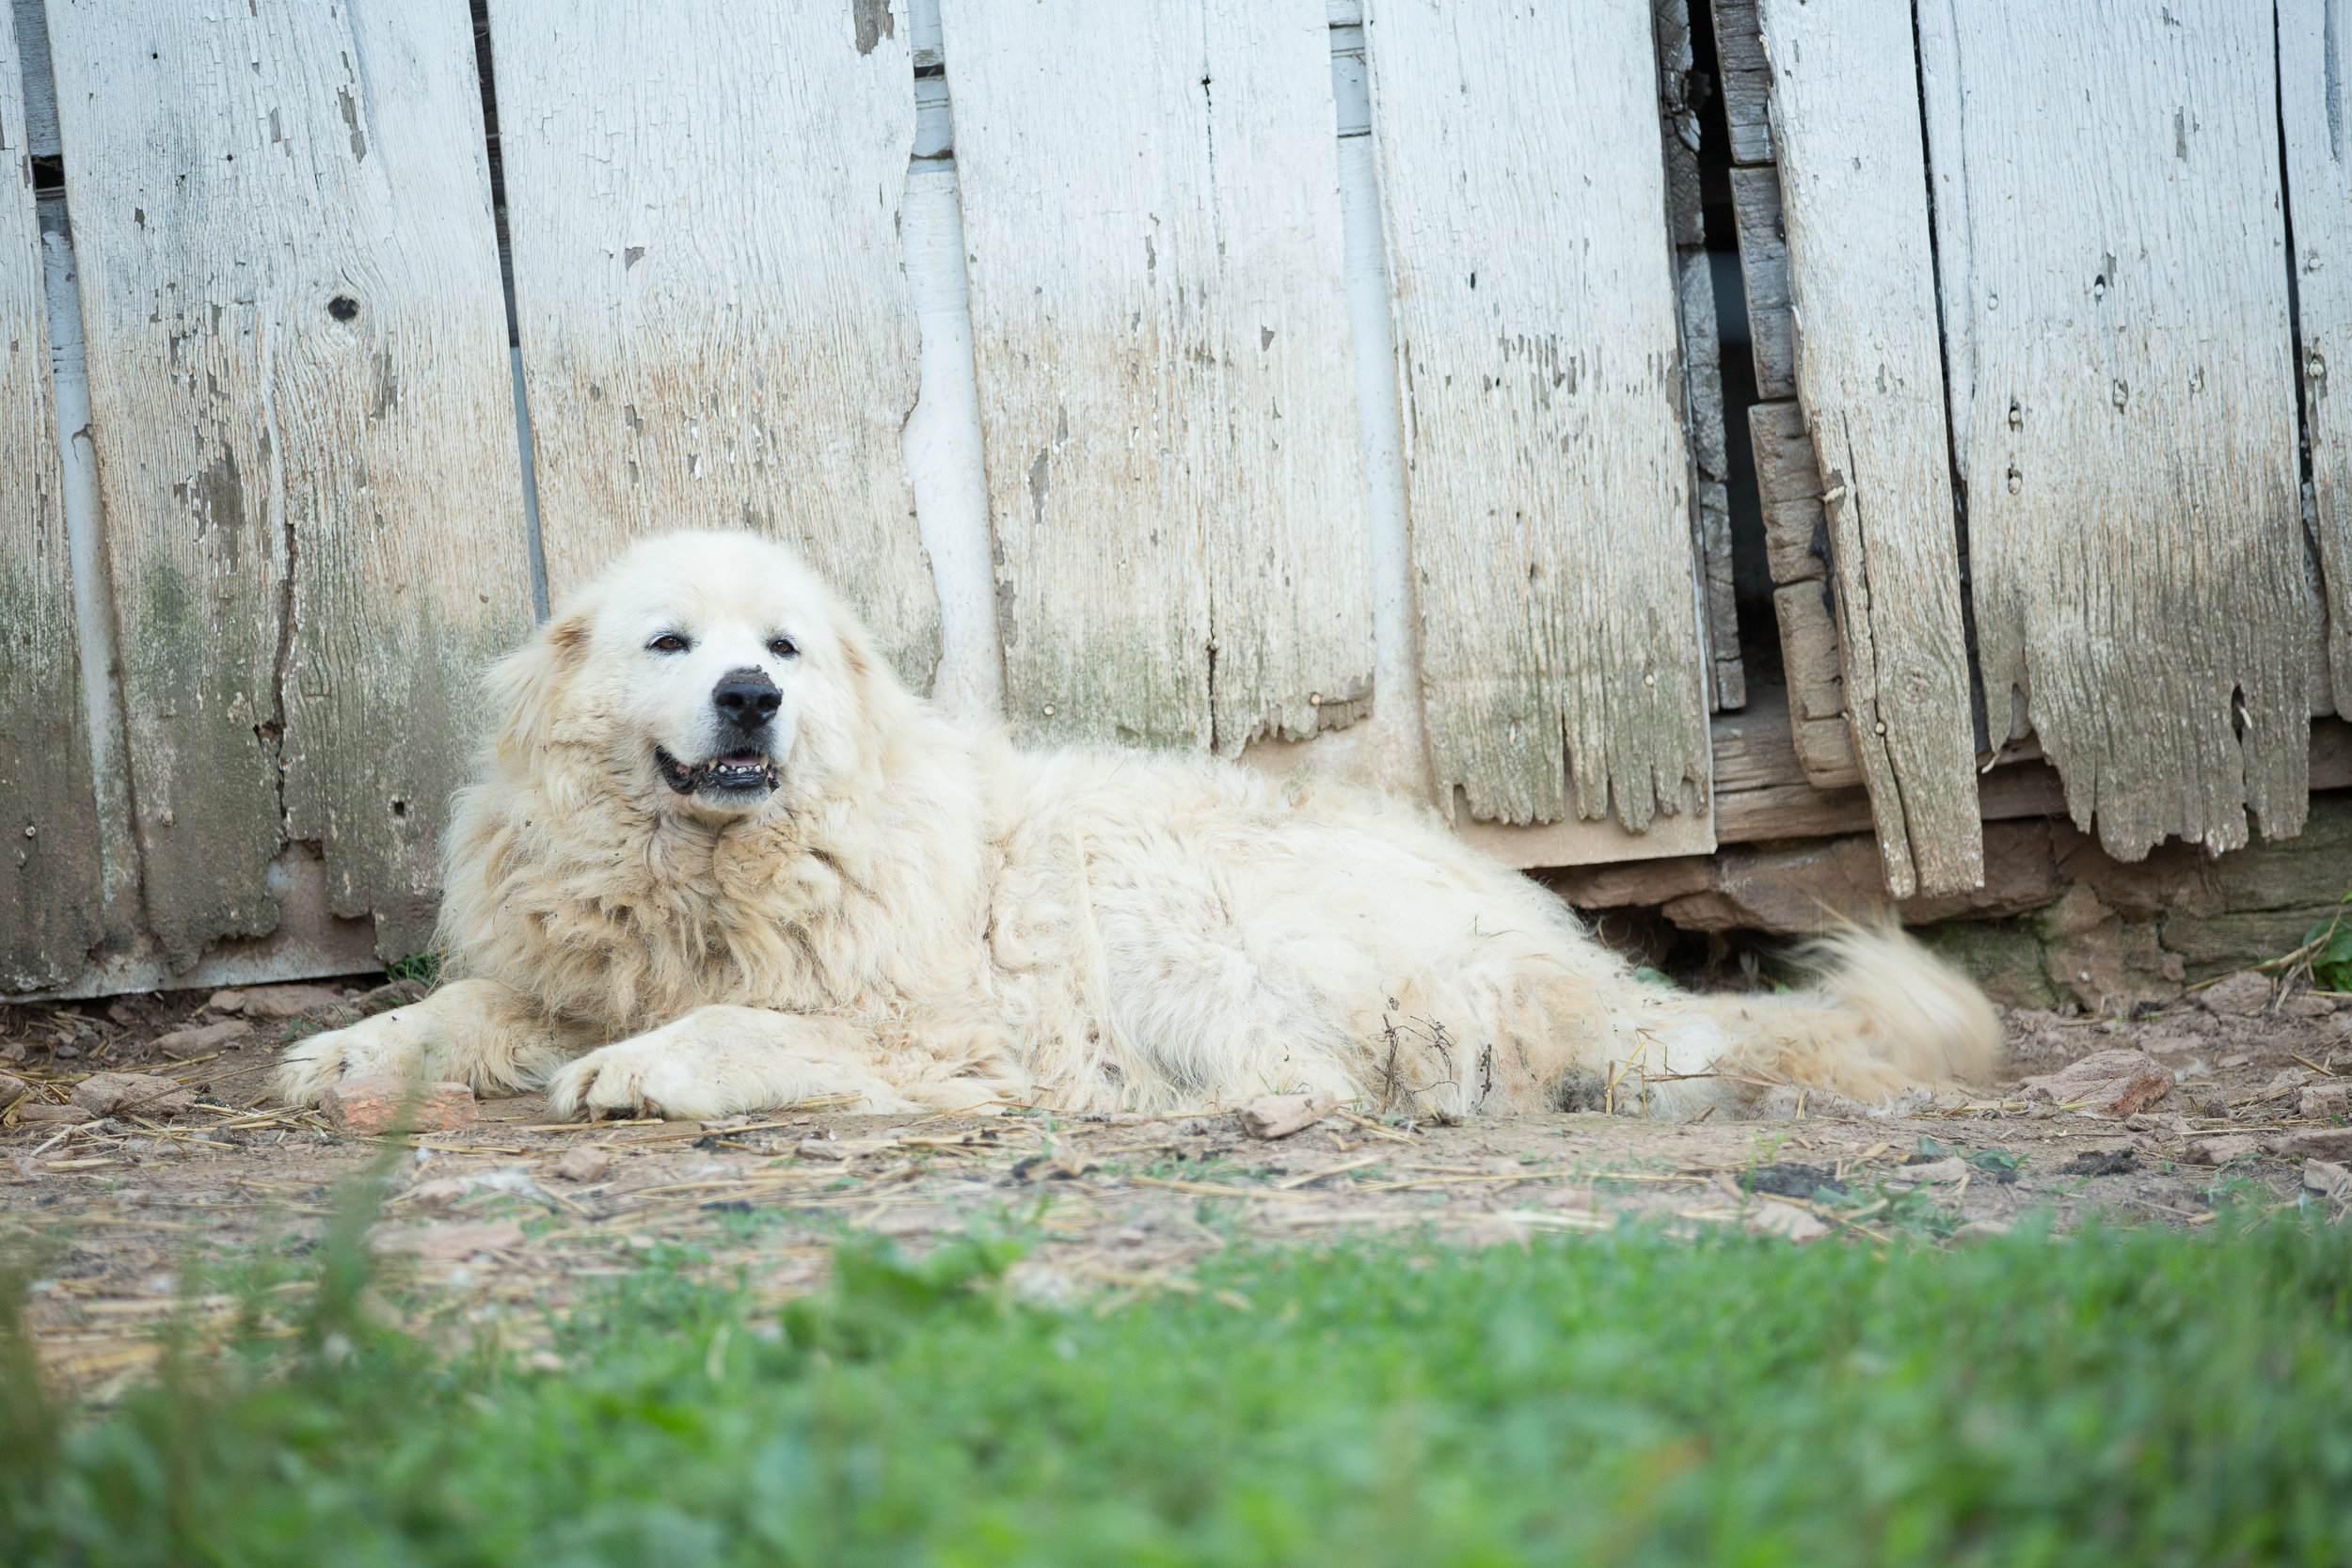 Livestock guardian dog on a flower farm in whiteford MD